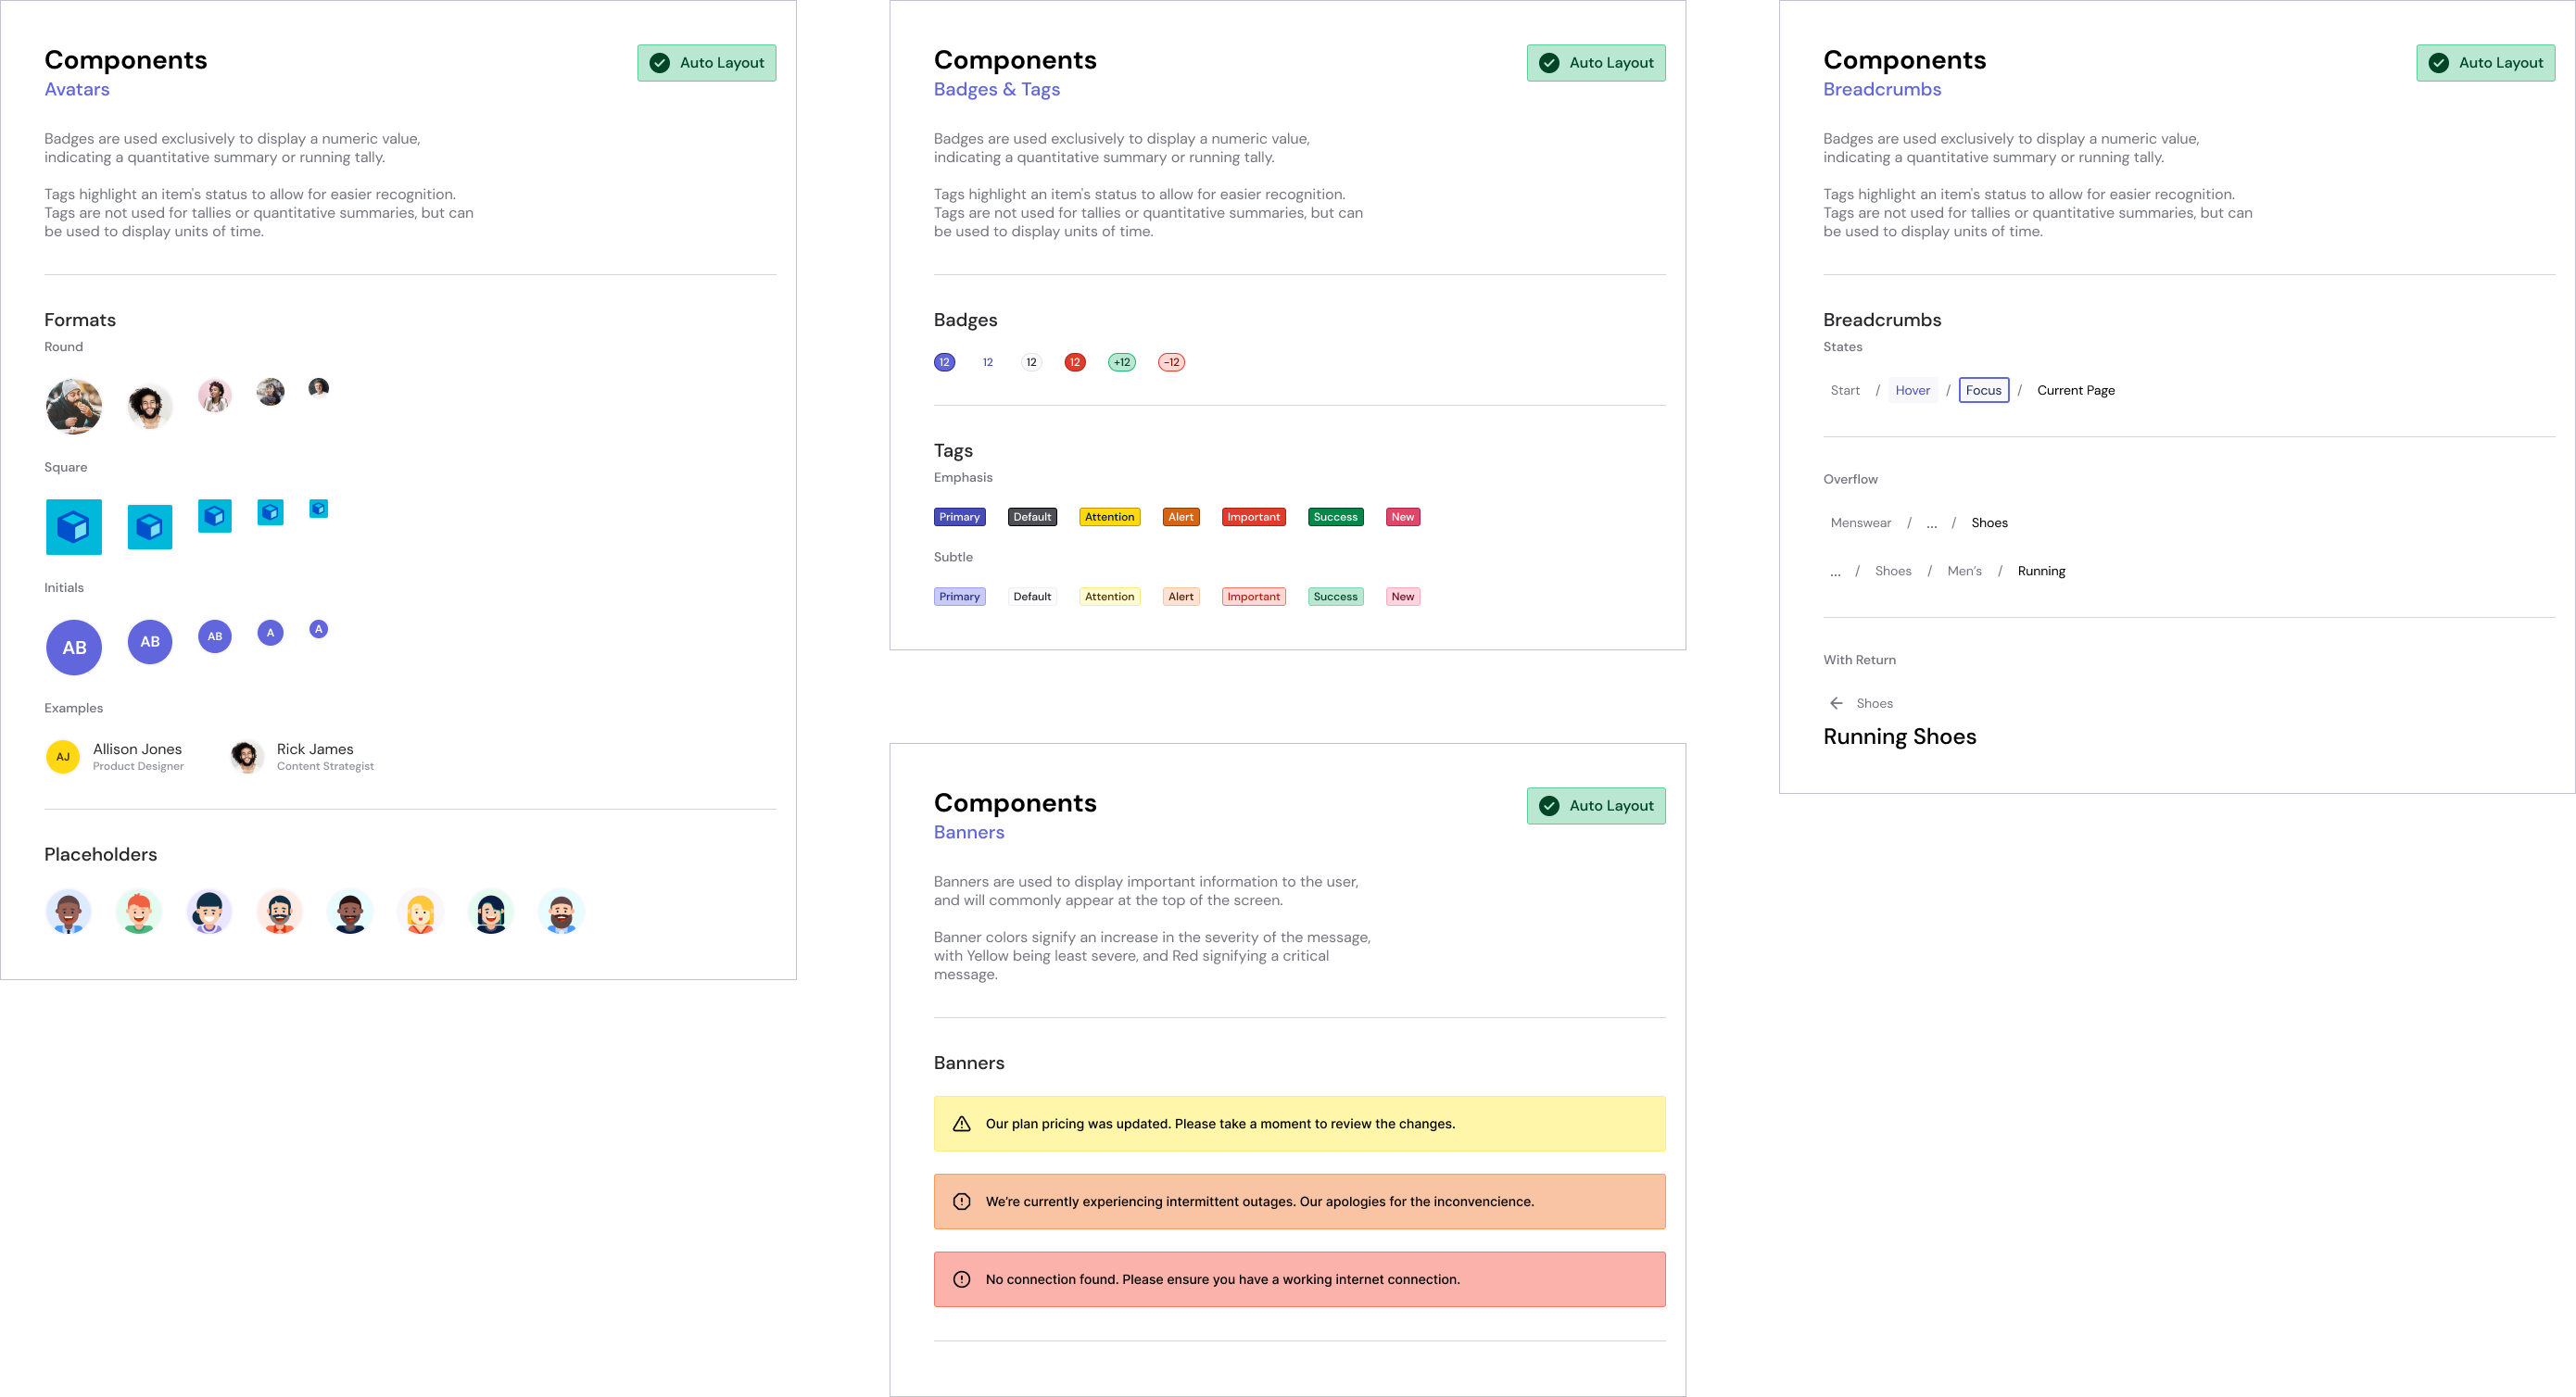 Components of the Layers Design System for Figma